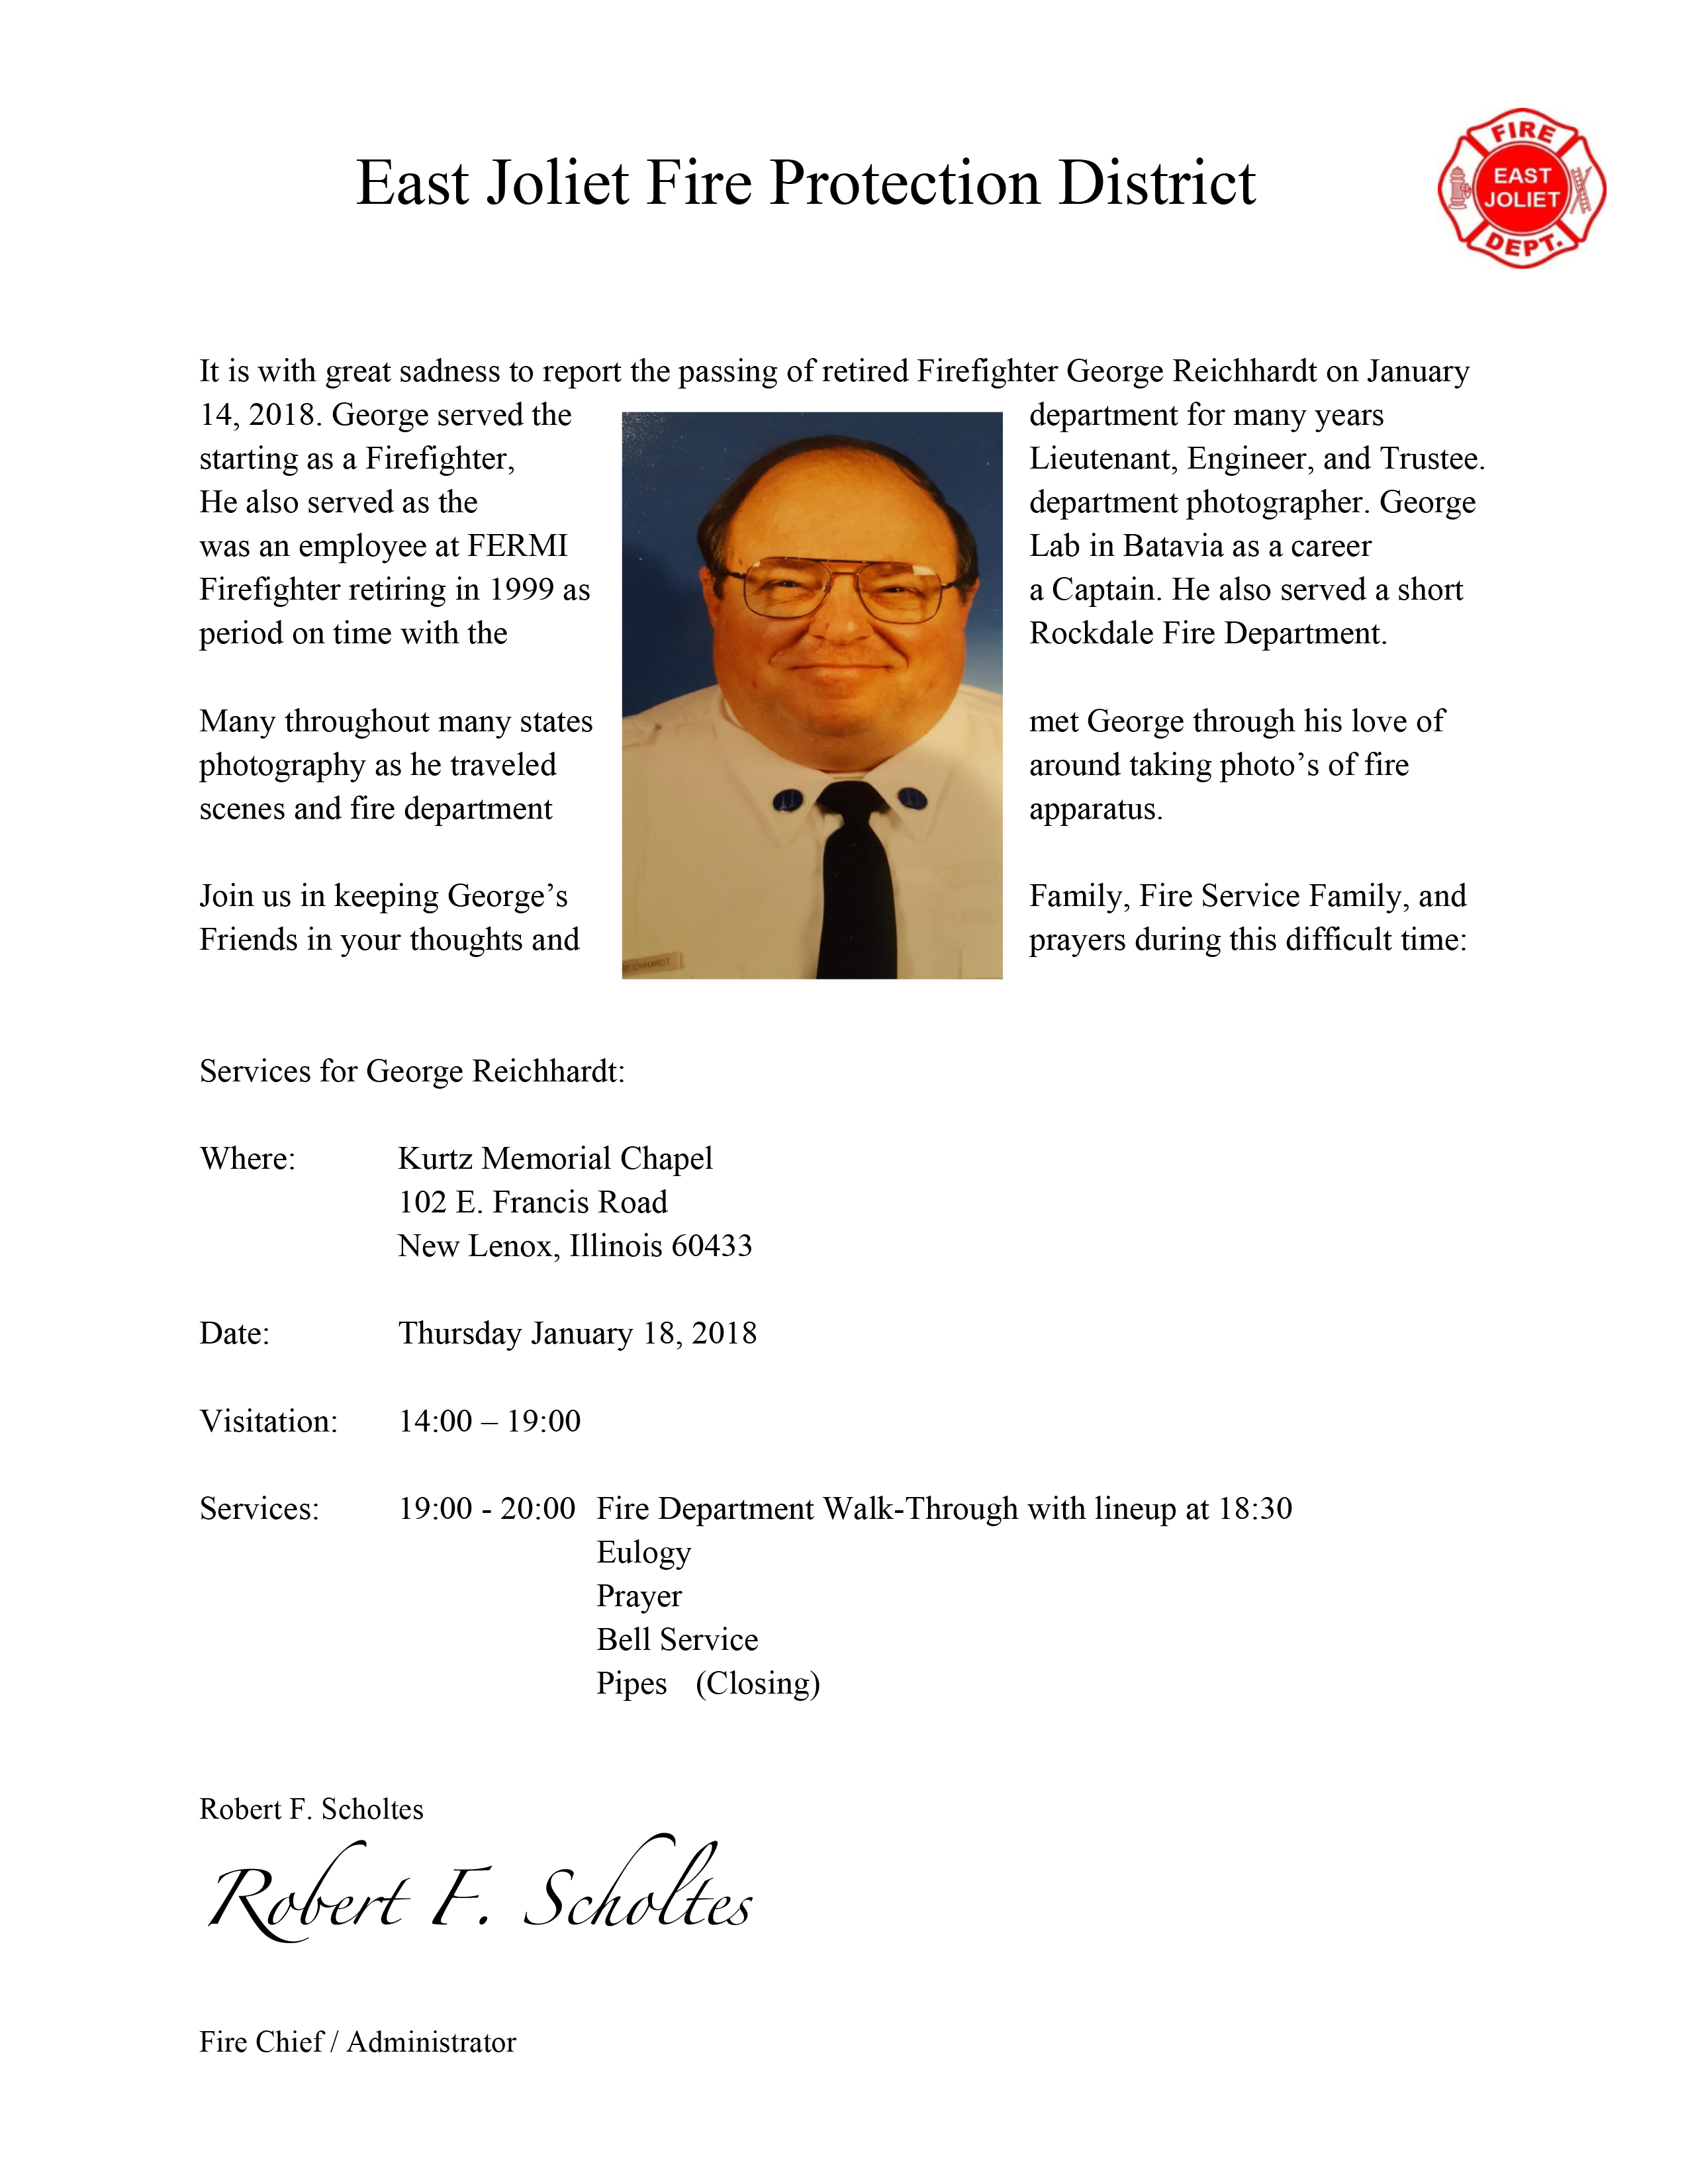 Funeral arrangements for George Reichhardt